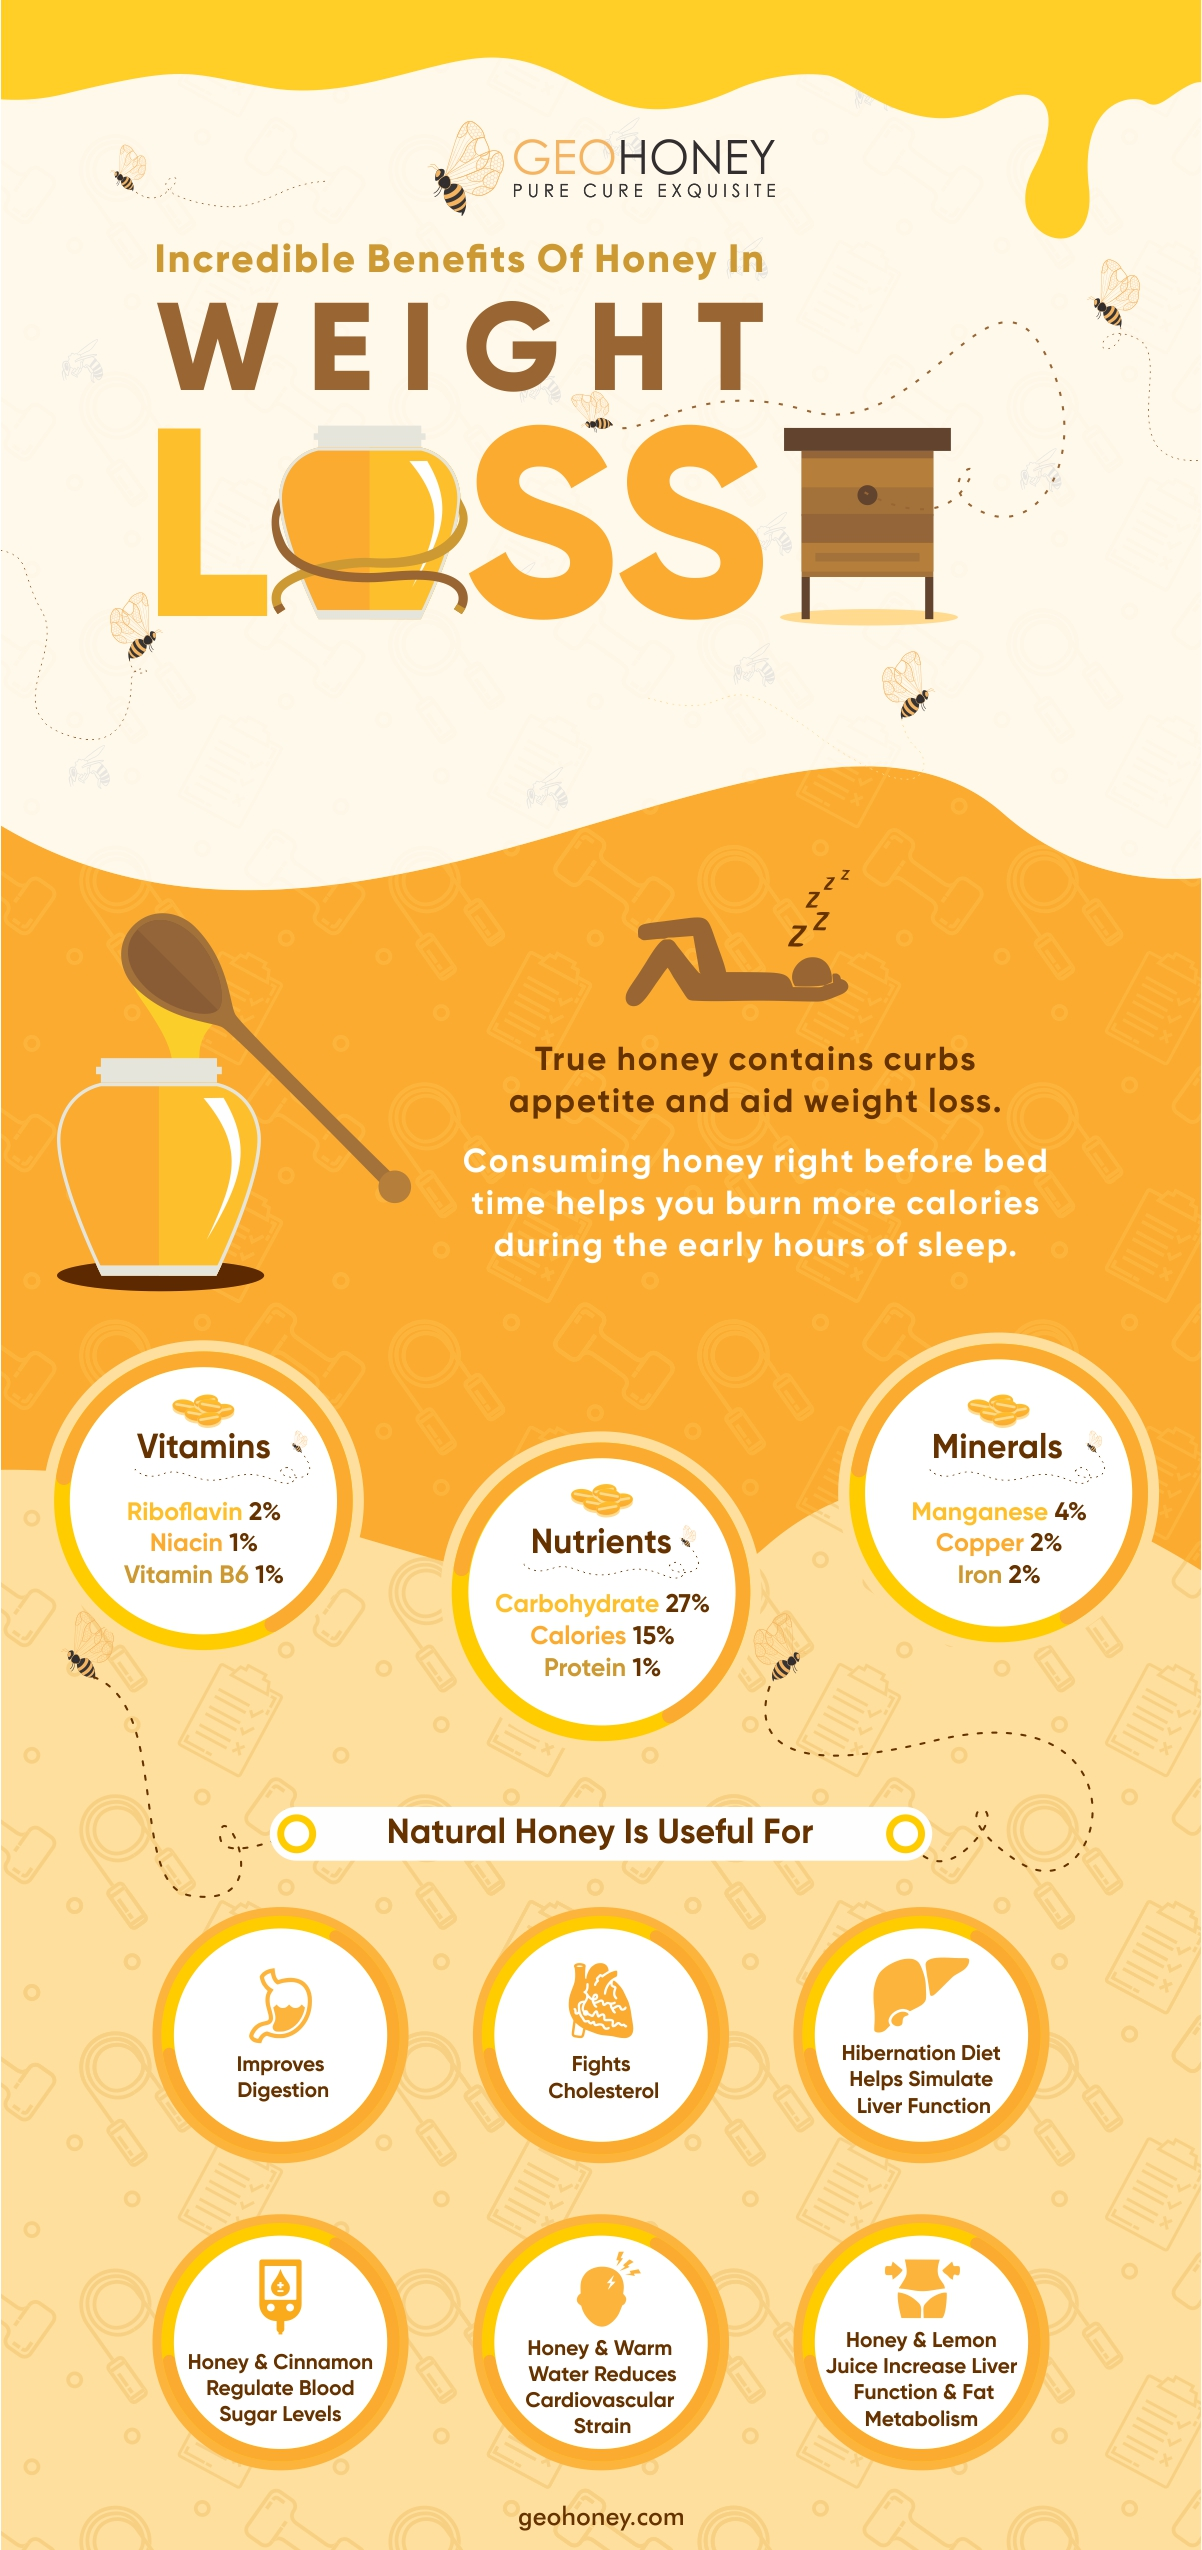 honey for weight loss - Geohoney